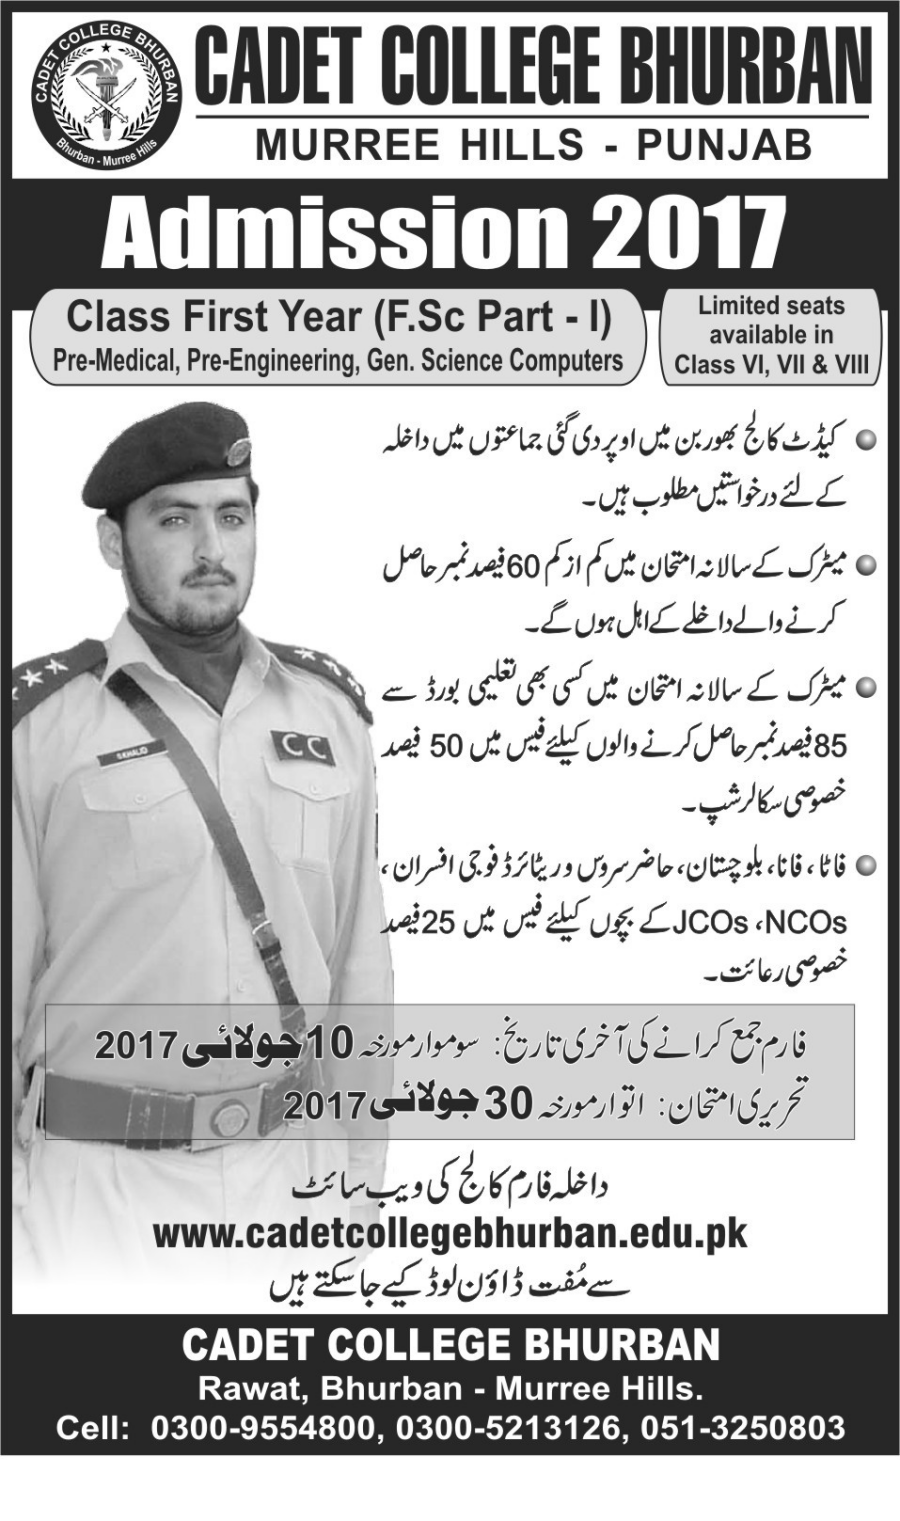 Cadet College Bhurban Murree Hills 1st Year Admissions 2017 Form, Last Date